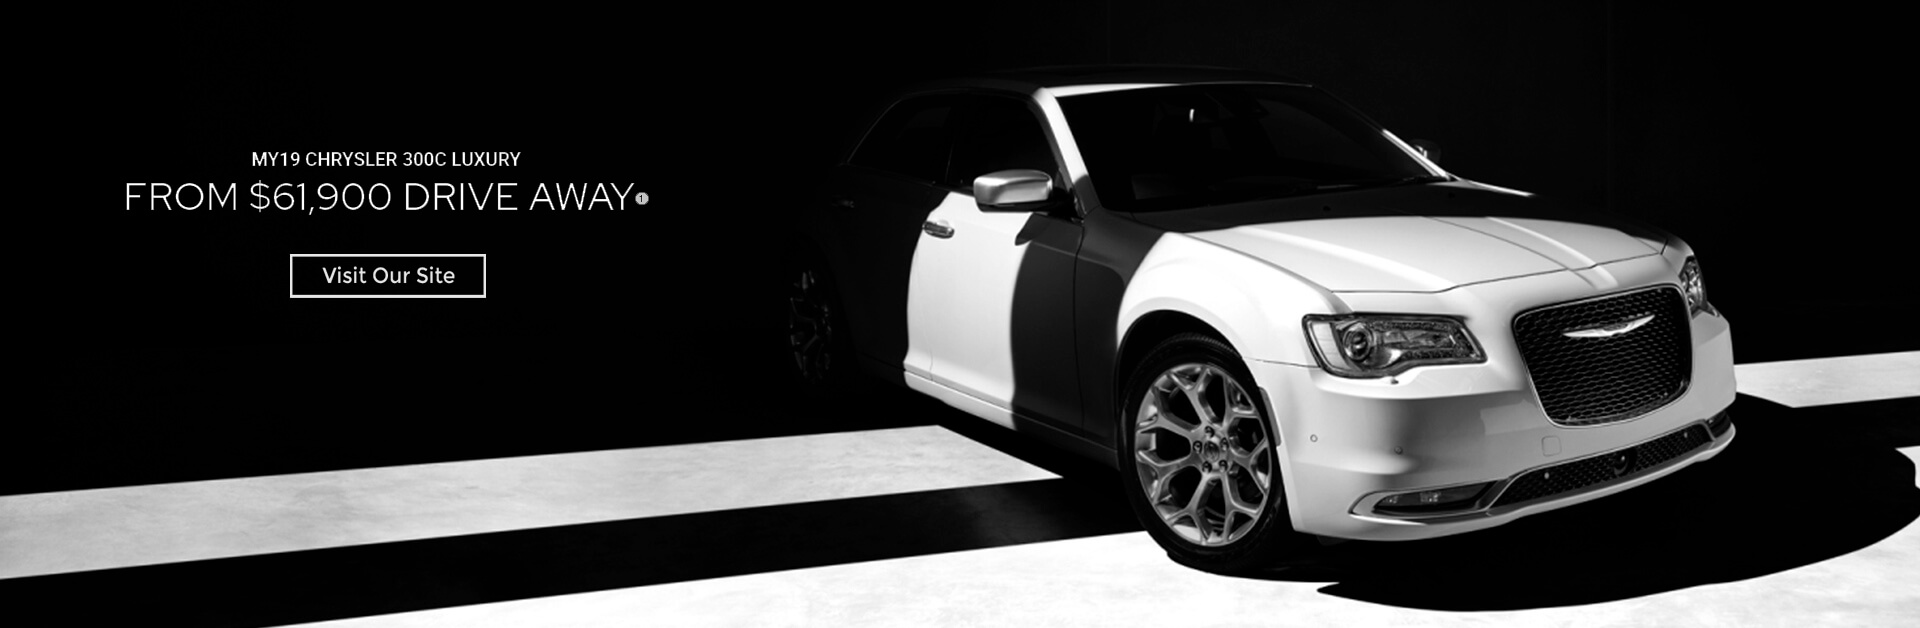 MY19 Chrysler 300C Luxury from $61.900 Drive Away